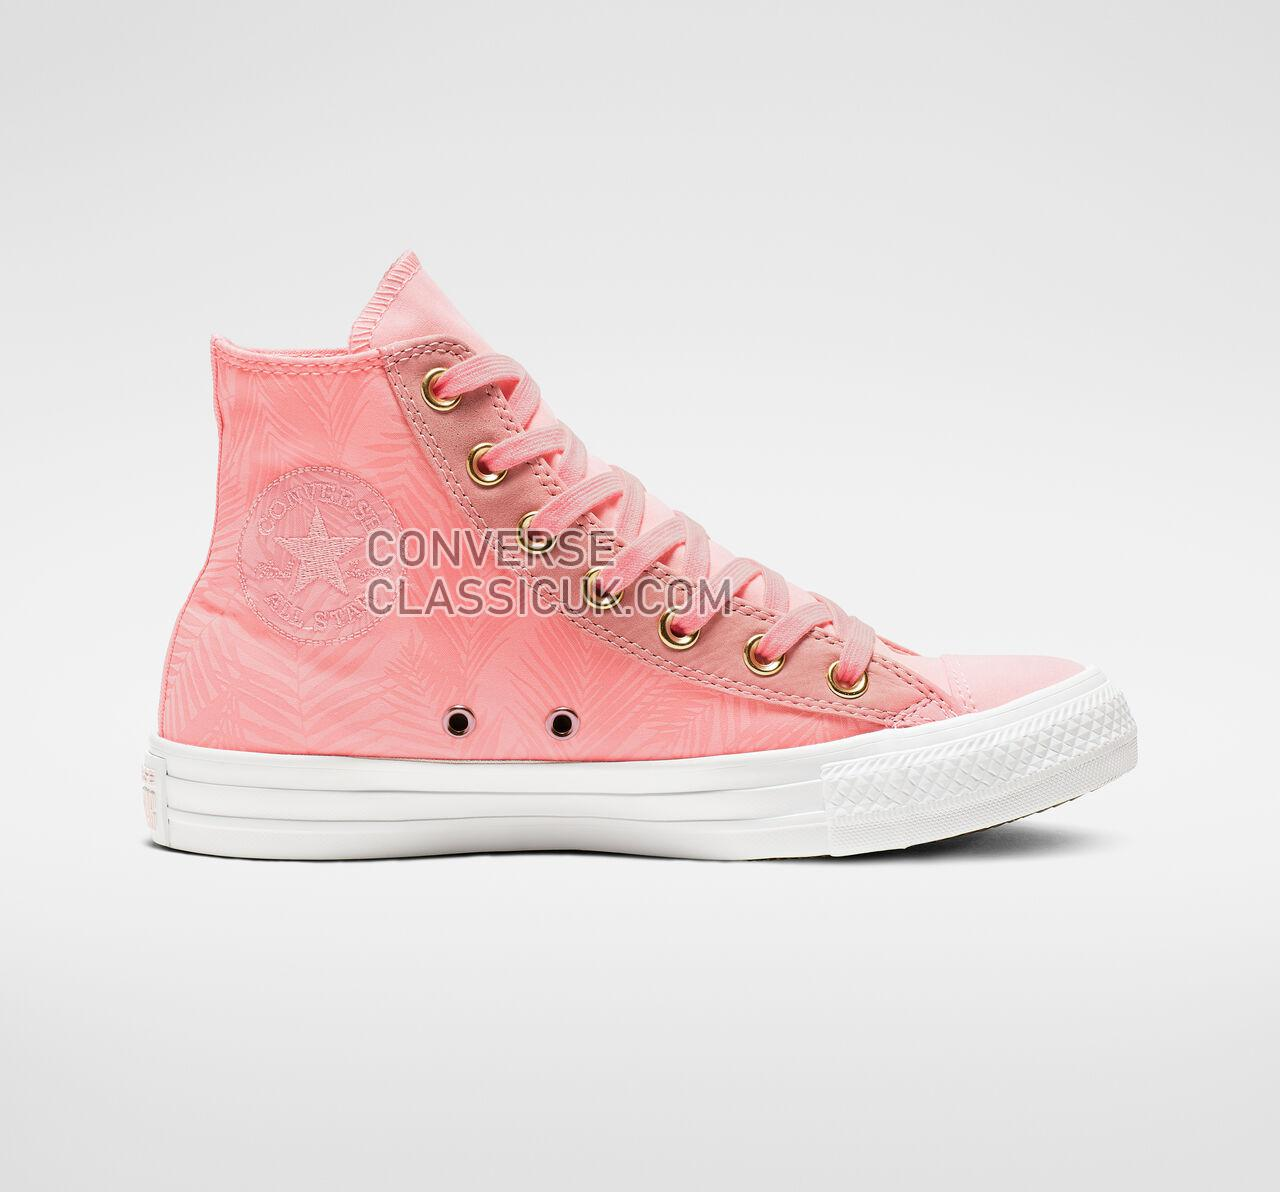 Converse Chuck Taylor All Star Summer Palms High Top Womens 564120F Bleached Coral/Antique Brass Shoes